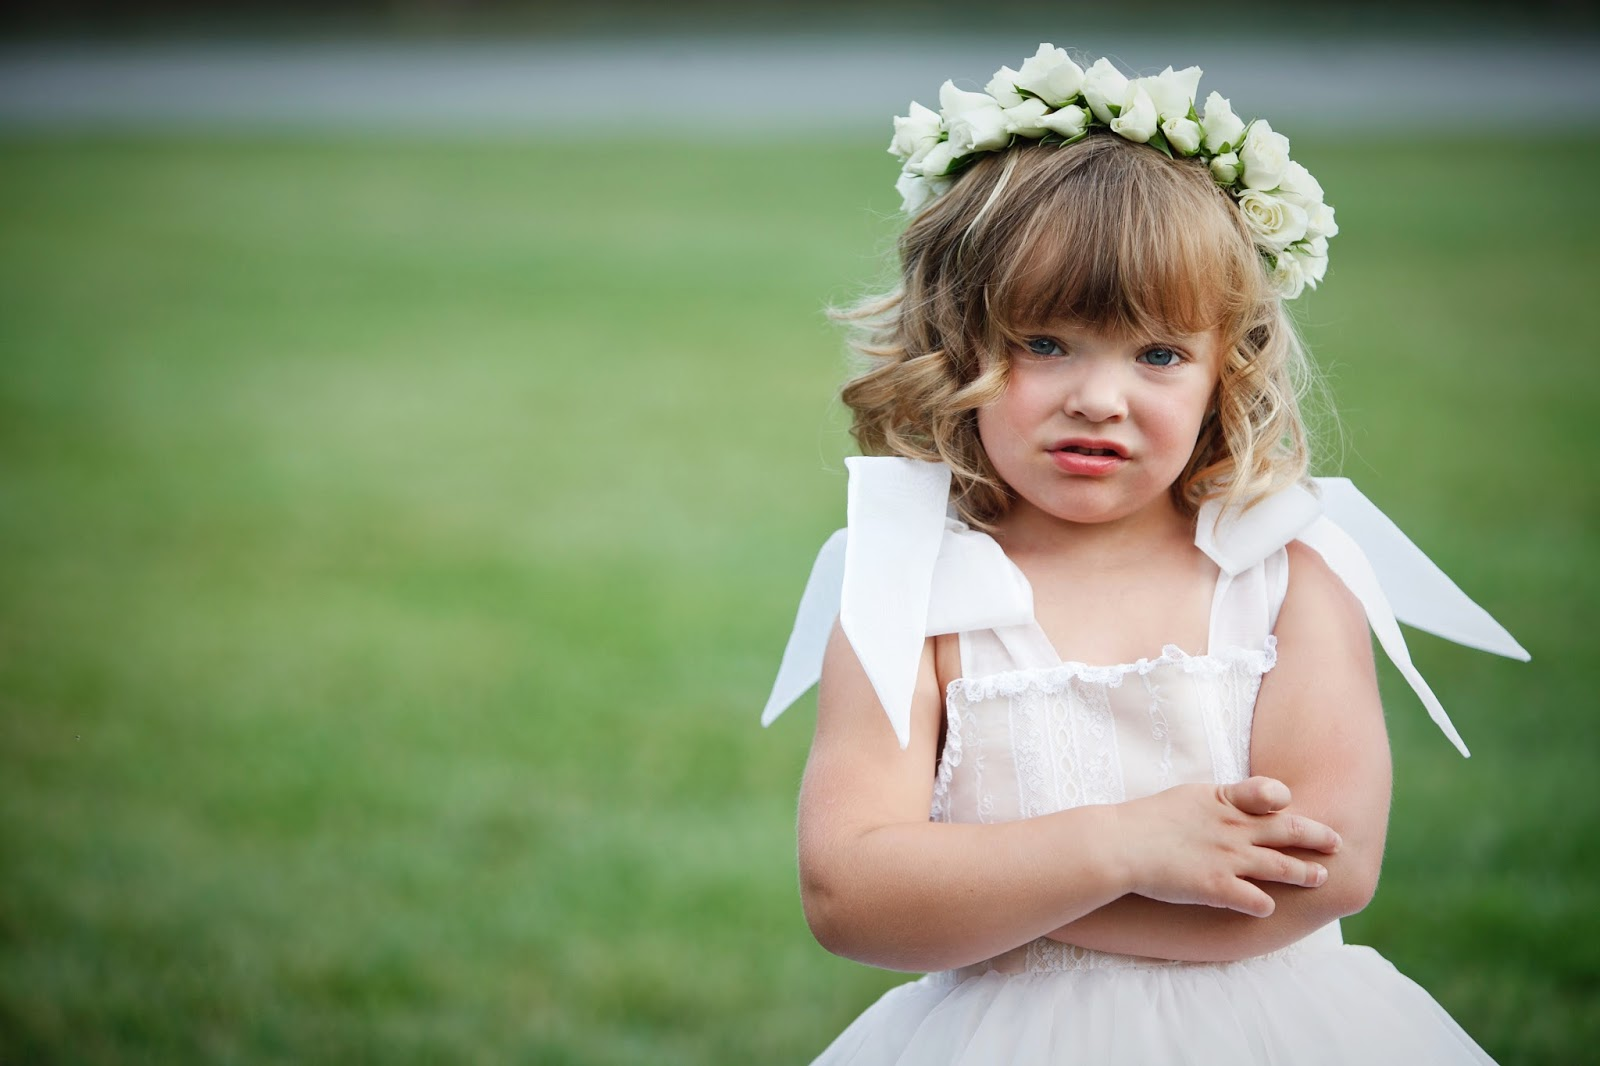 Lisa foster floral design flower crowns and halos typically a flower crown has been used for the flower girl or junior bridesmaids to adorn their little heads izmirmasajfo Gallery